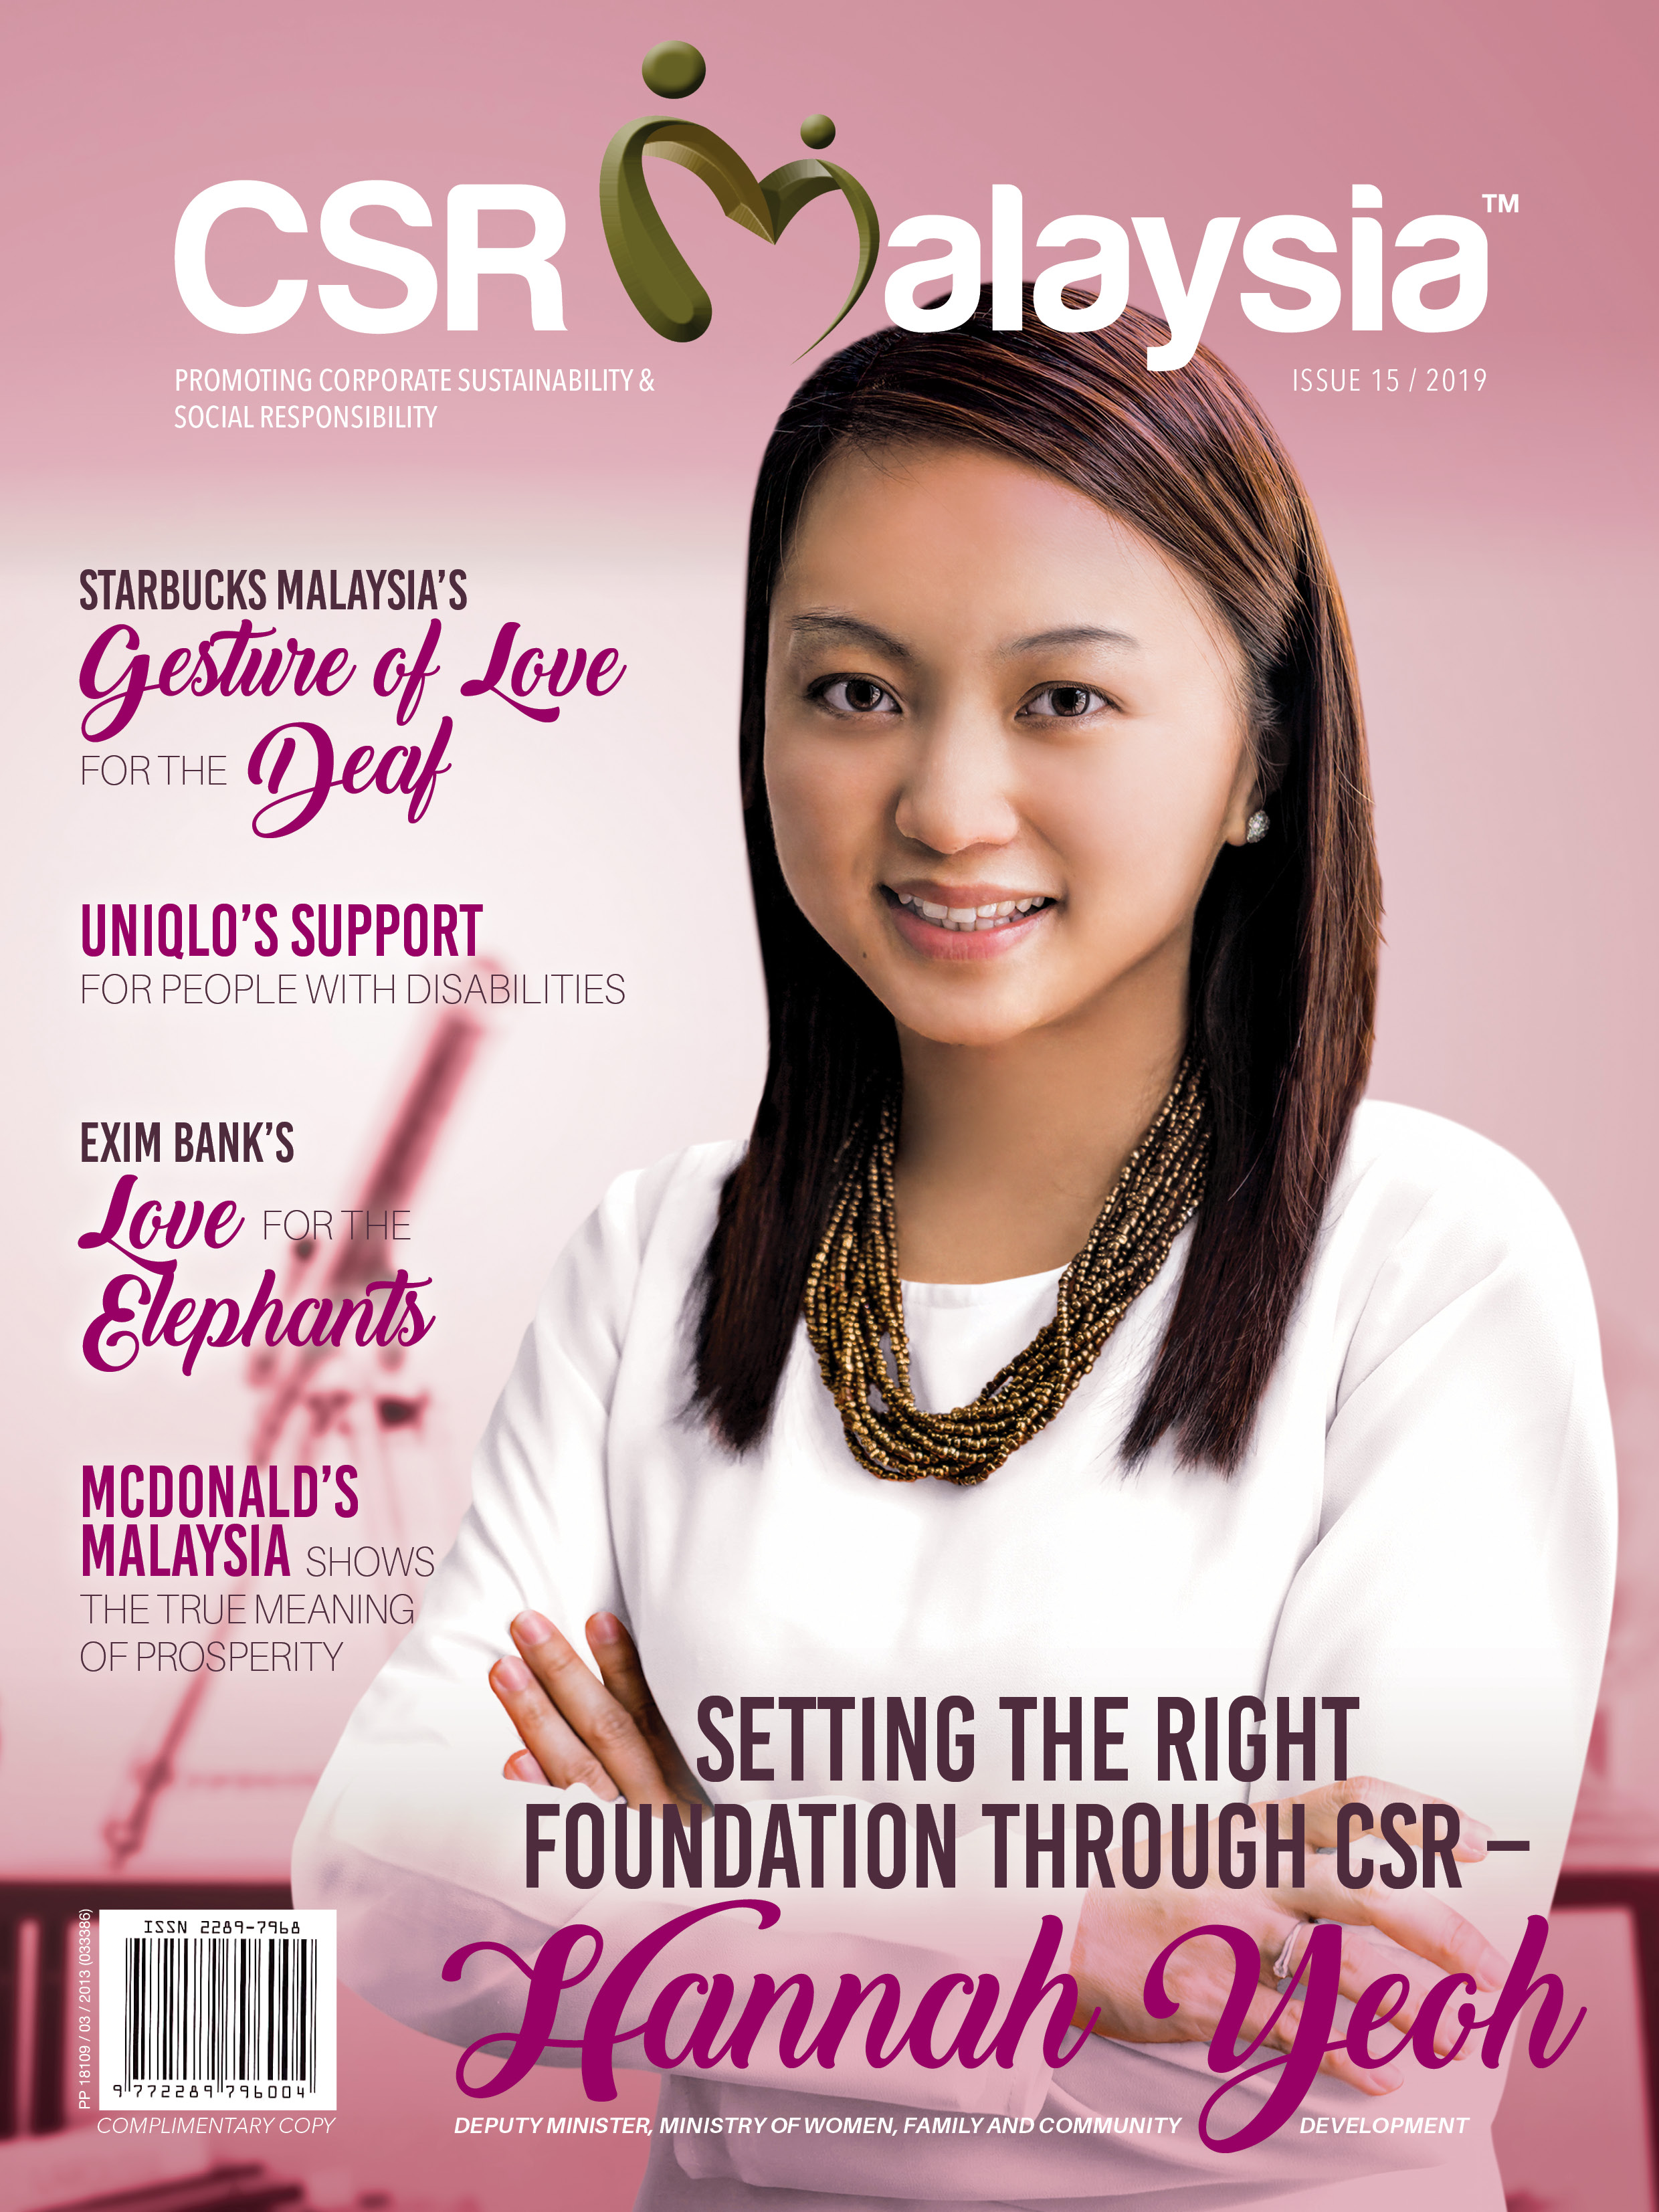 CSR Malaysia Issue 15 HANNAH YEOH, MINISTRY OF WOMEN, FAMILY AND COMMUNITY DEVELOPMENT